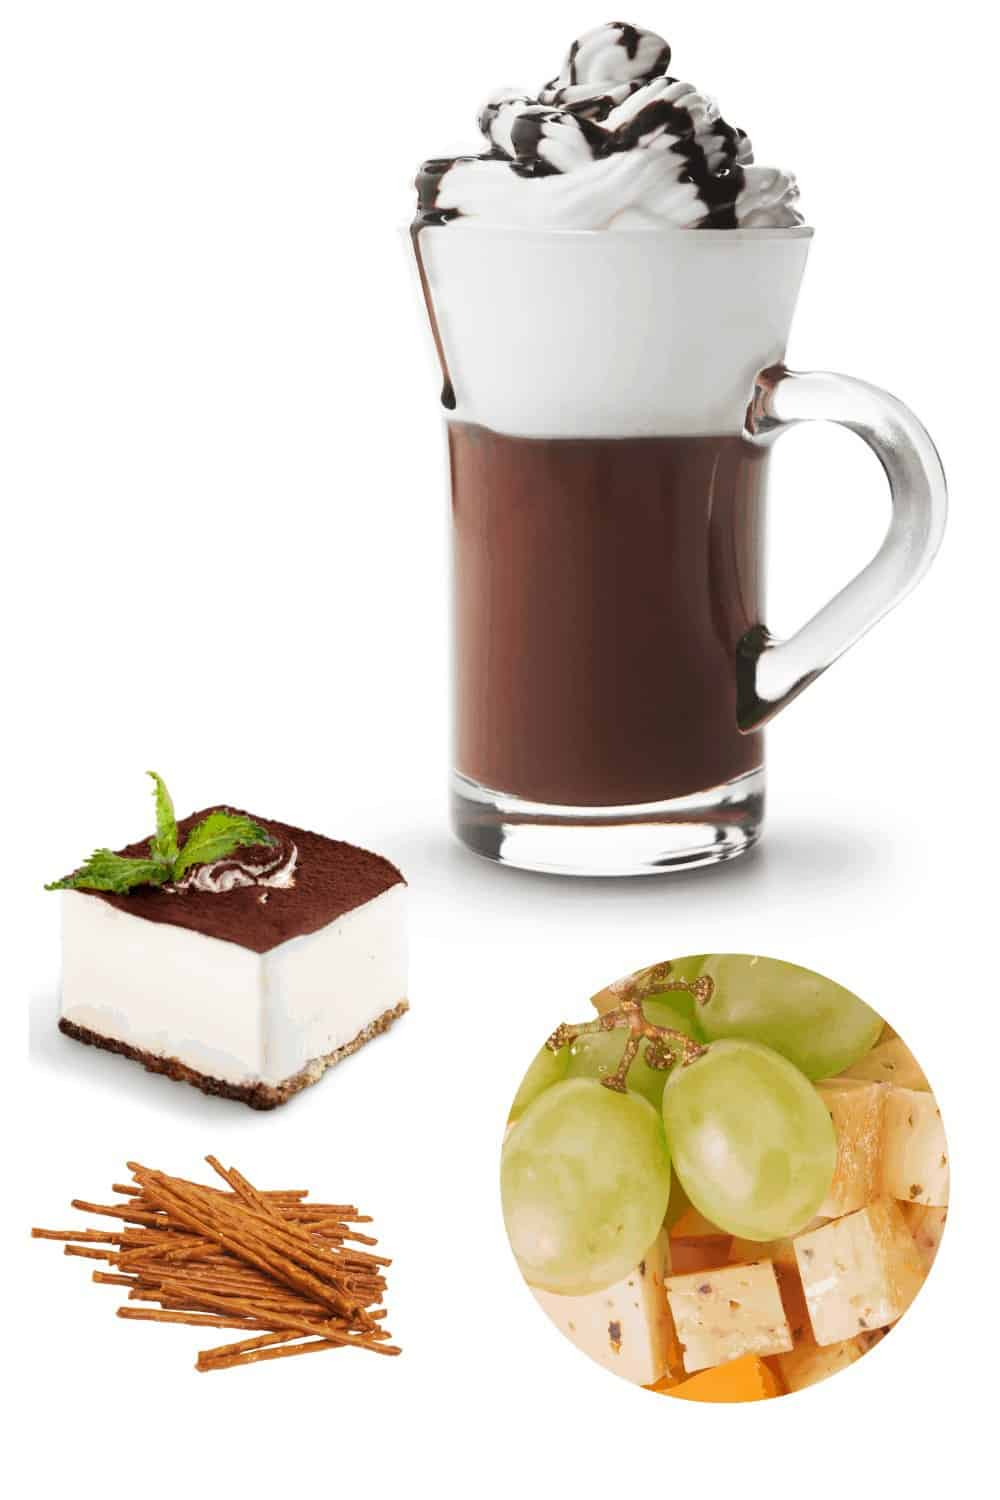 Hot Chocolates and Food together